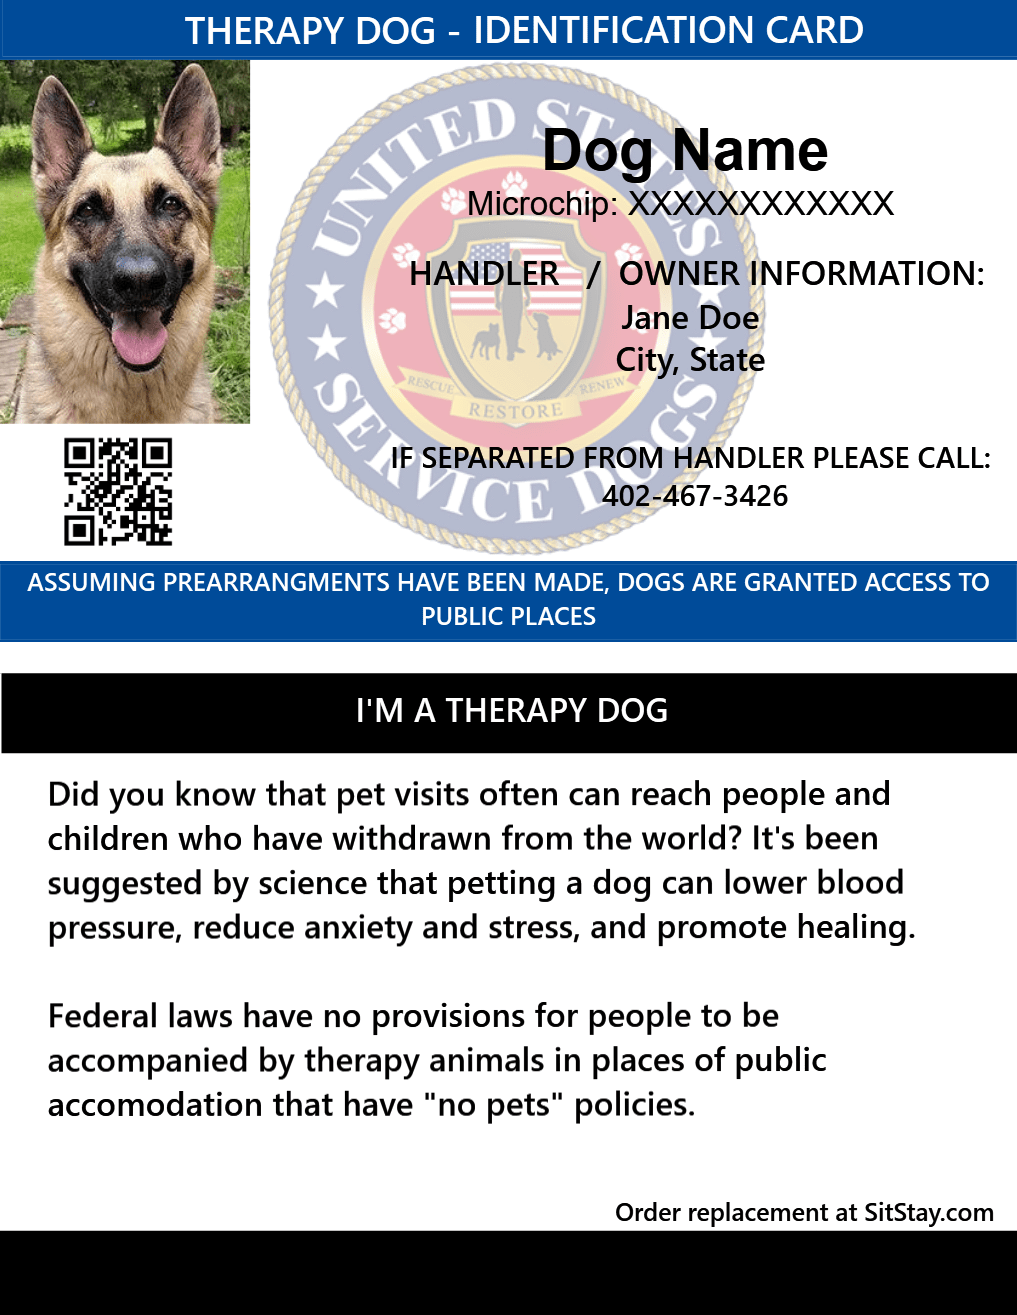 Id Card Therapy Dog Service Dogs Medication For Dogs Emotional Support Animal